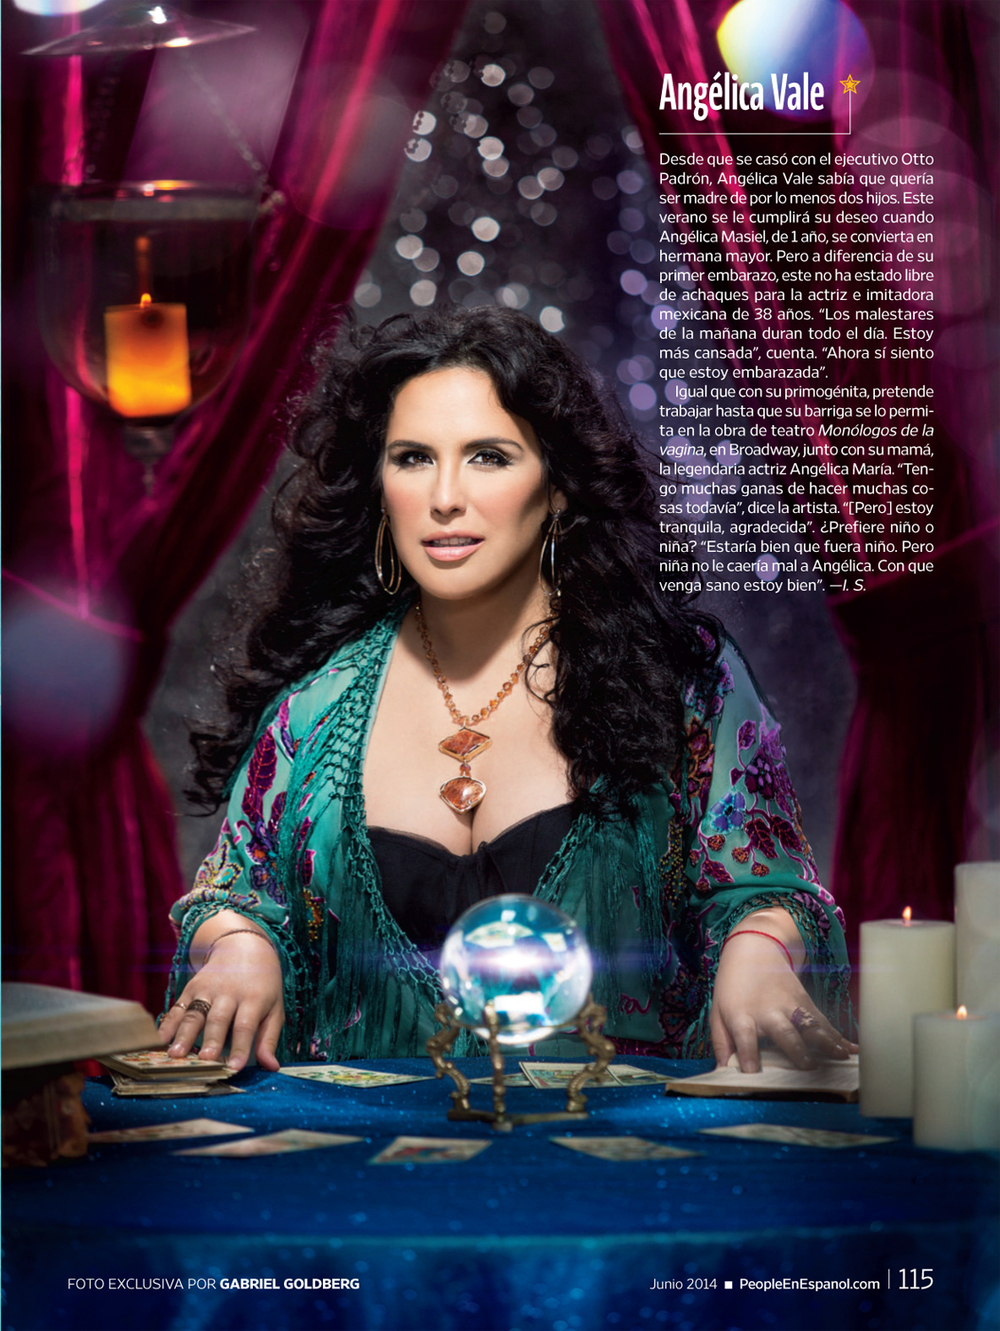 People Espanol 50 Most Beautiful Issue, Angelica Vale